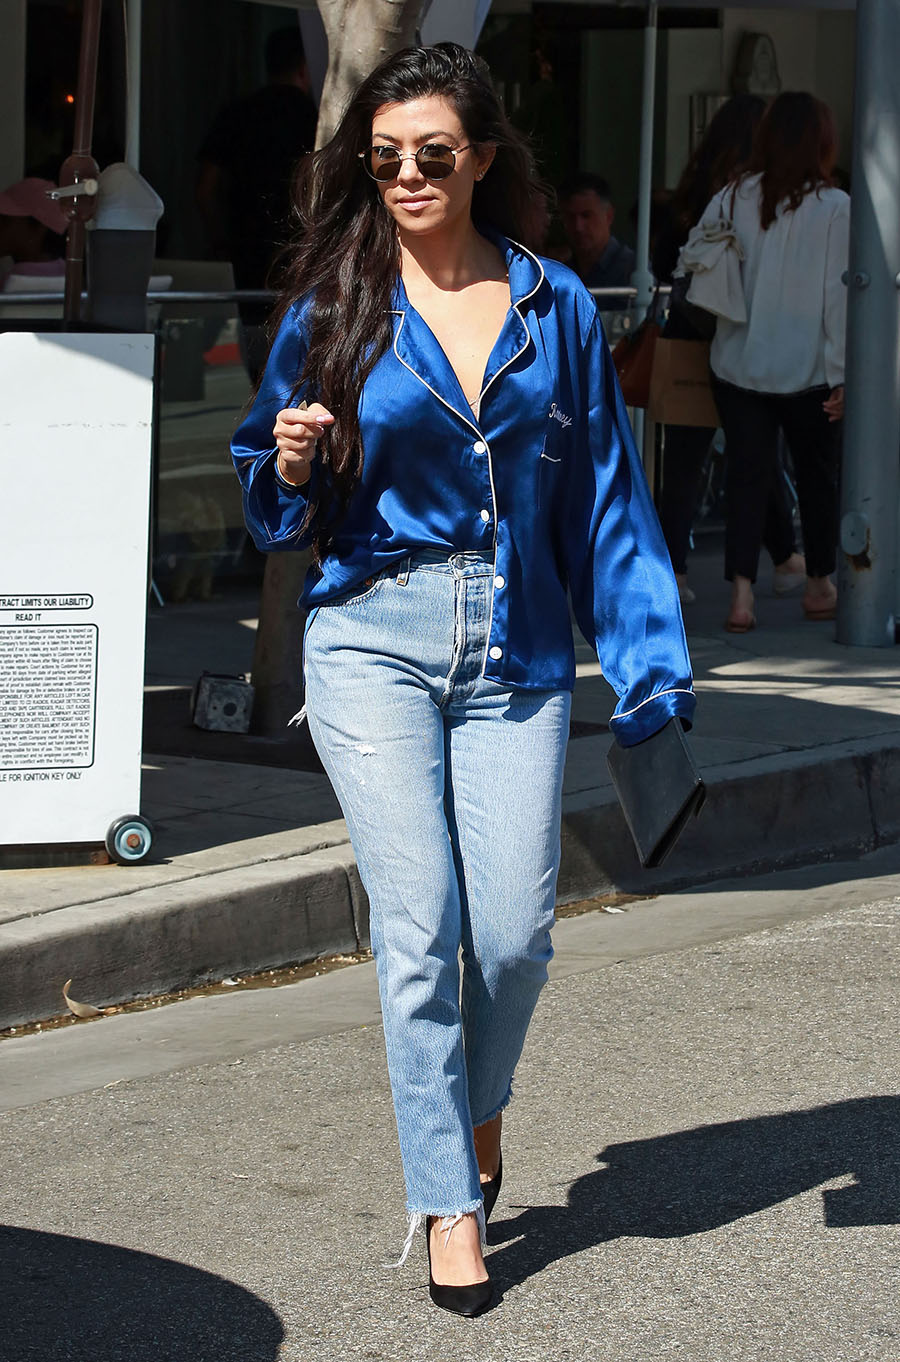 Kourtney Kardashian. Top 4: Kourtney Kardashian